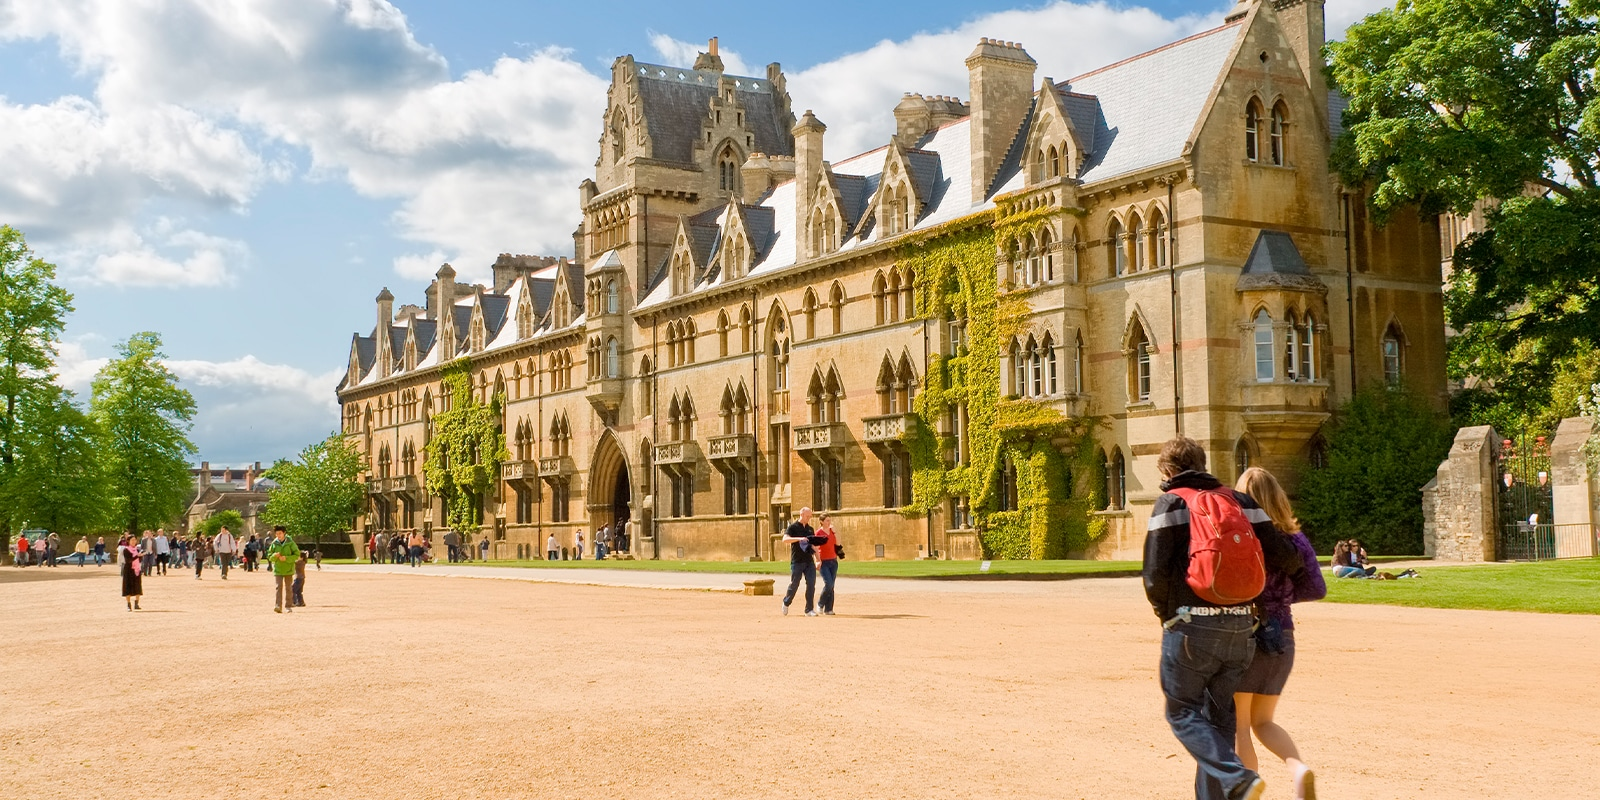 Established in 1546, Christ Church is one of the largest constituent colleges of the University of Oxford